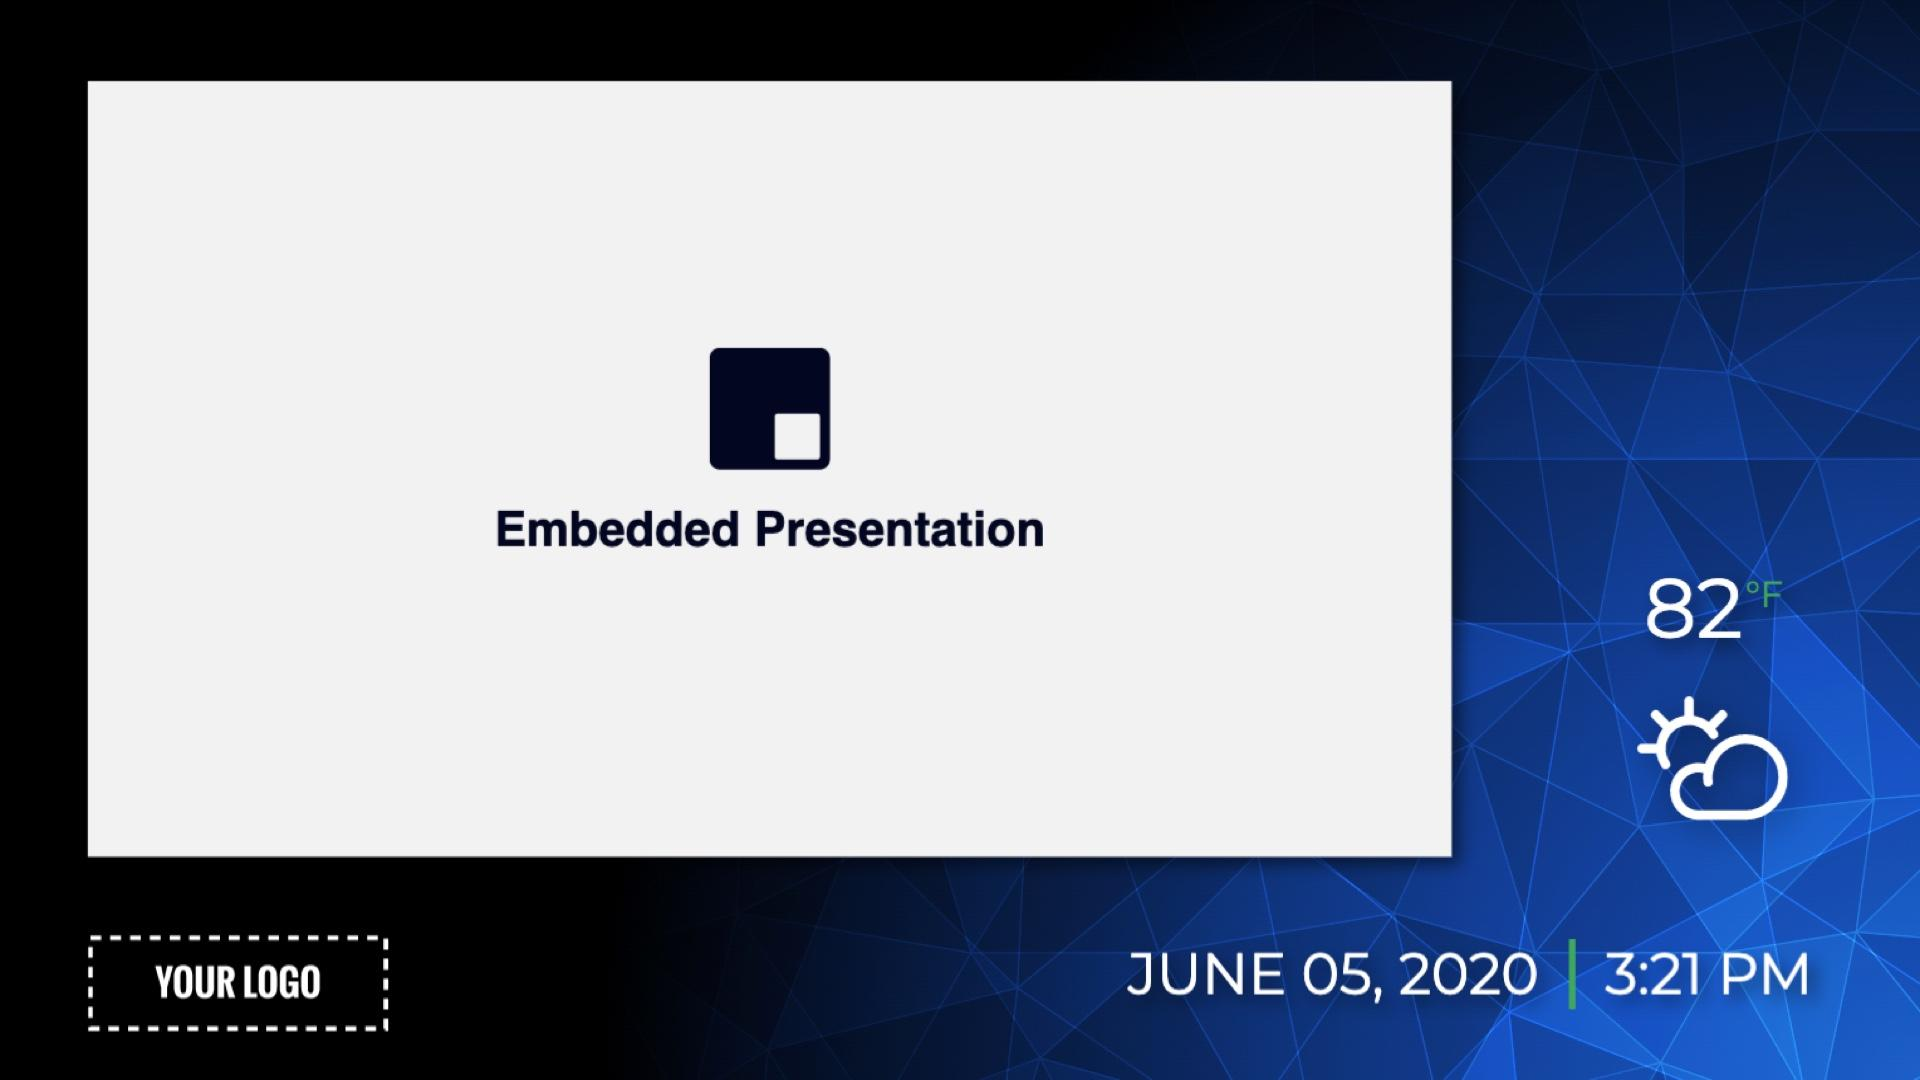 Zoned Minimal Embedded Presentation Digital Signage Template